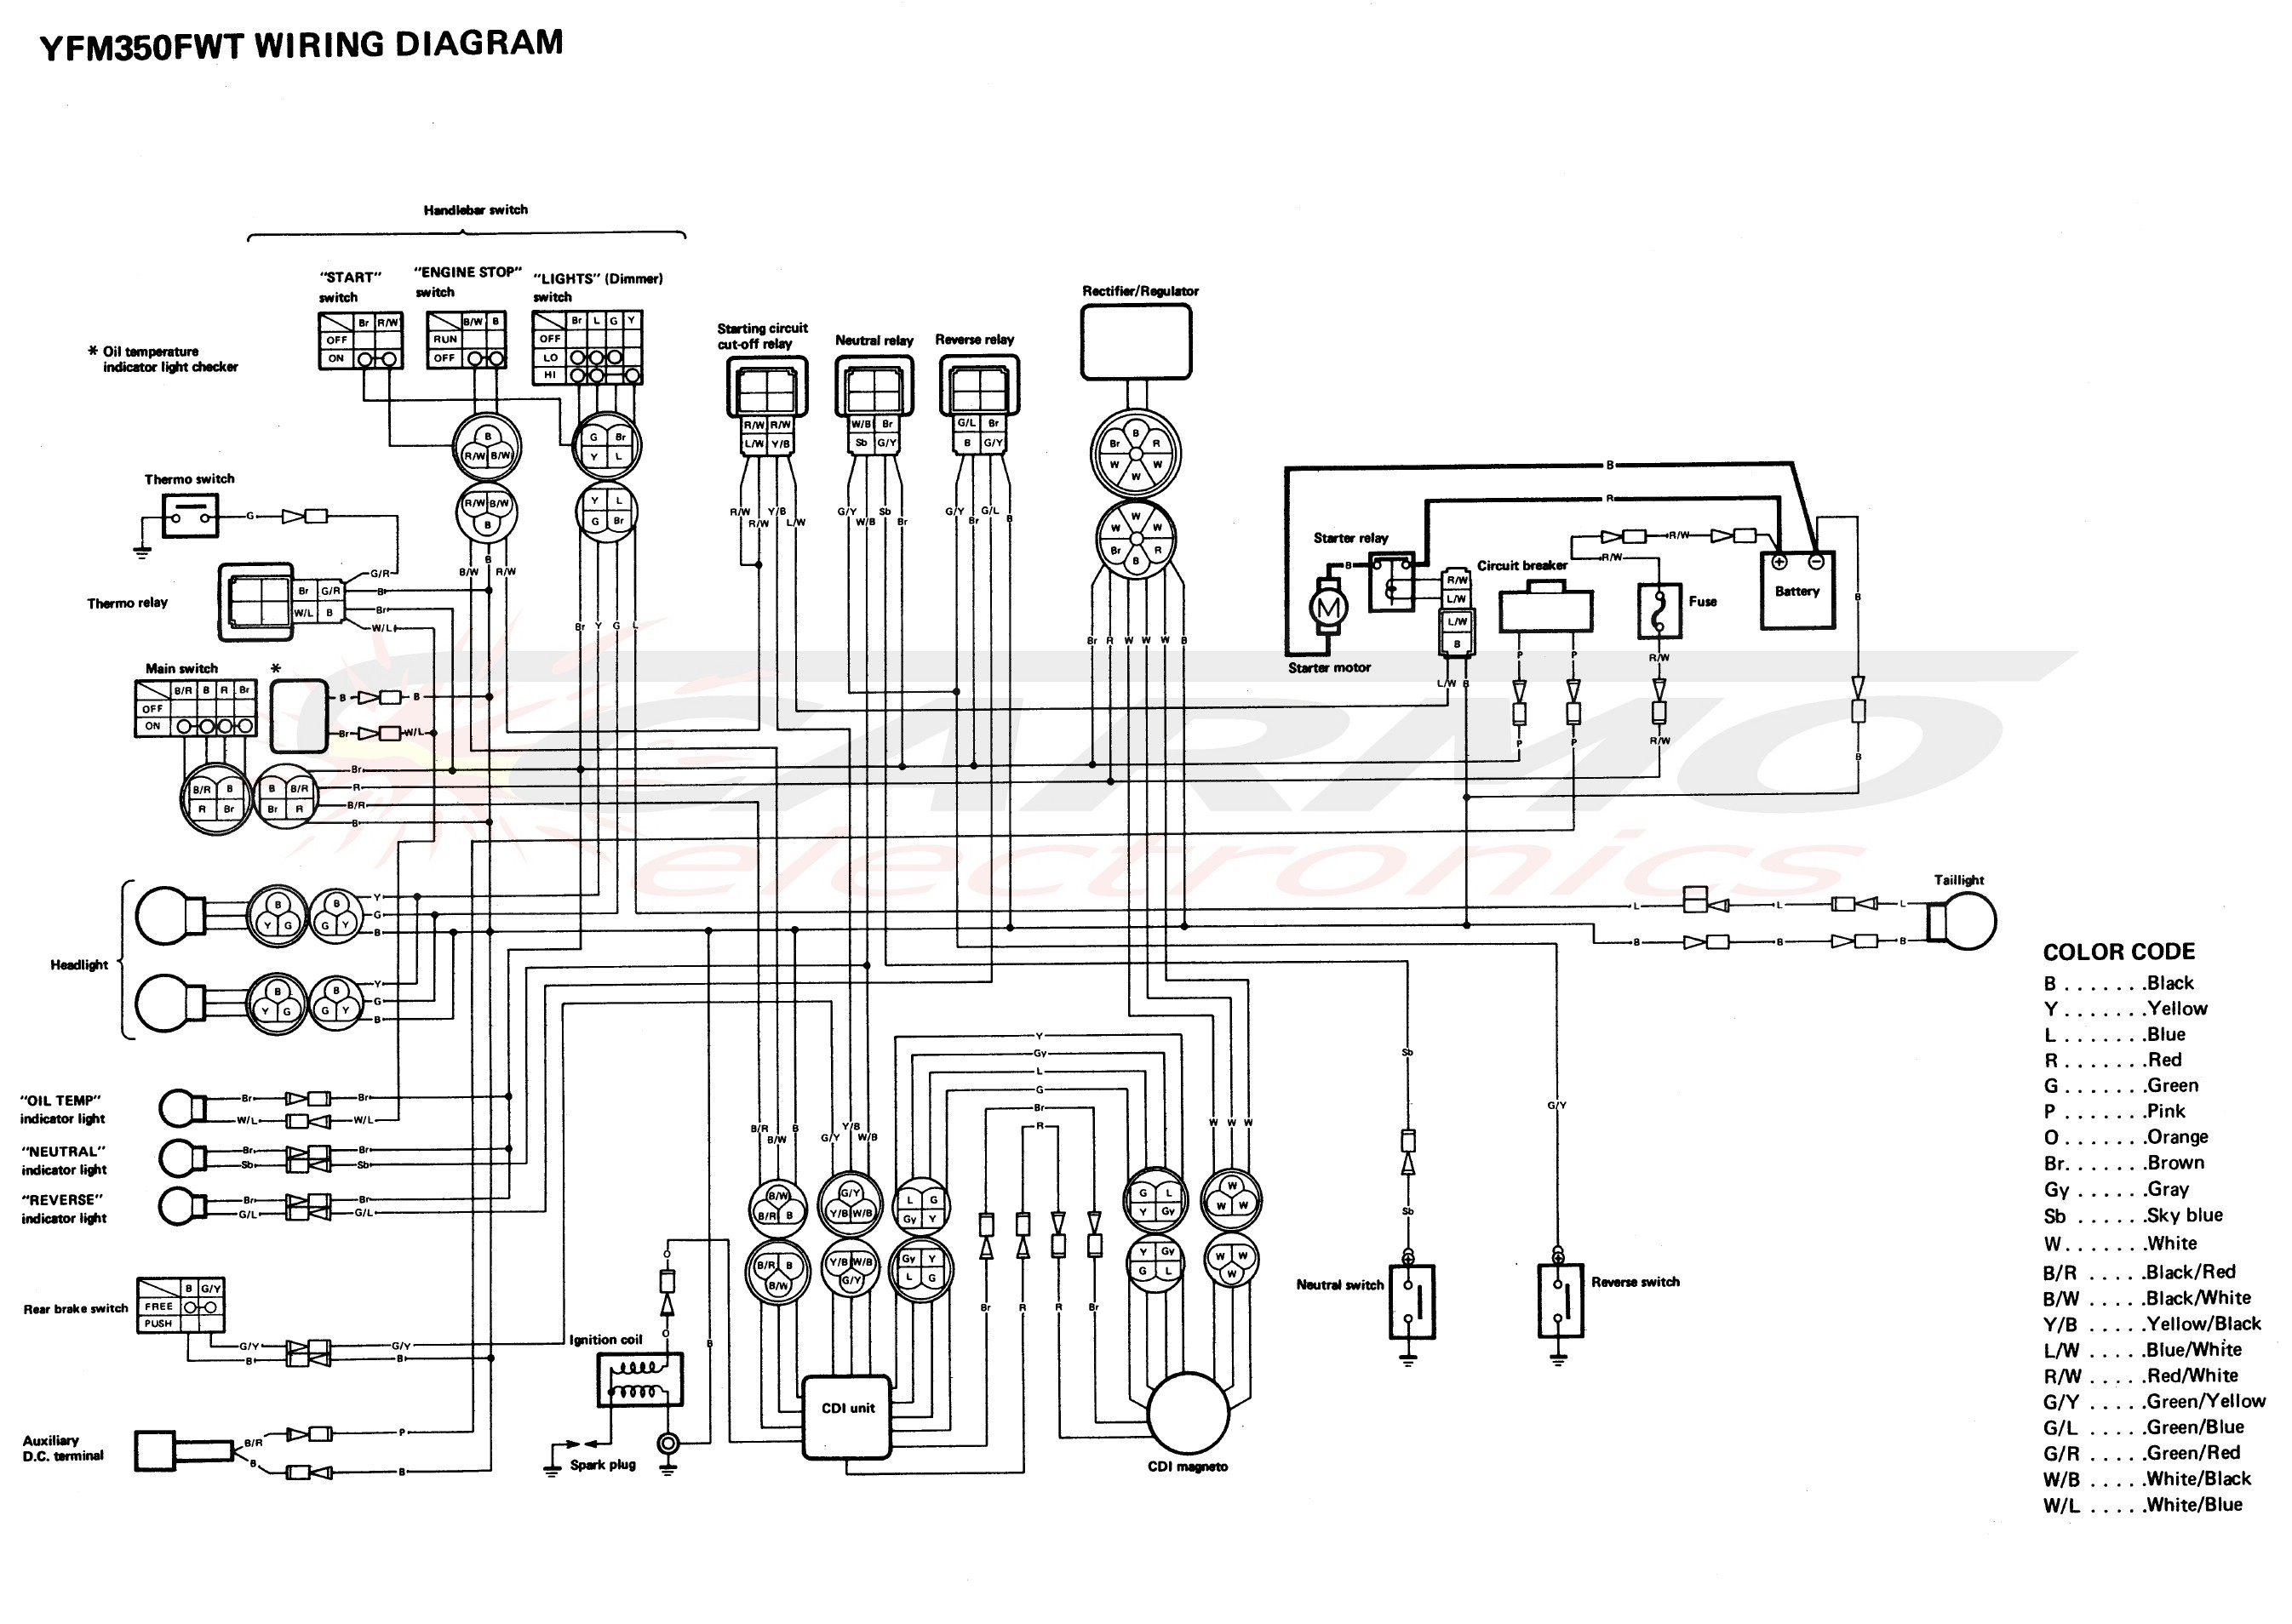 Yfm80 Wiring Diagram Electronic Diagrams Yamaha Breeze Yfm350 Xj650 Yfm 350 Books Of